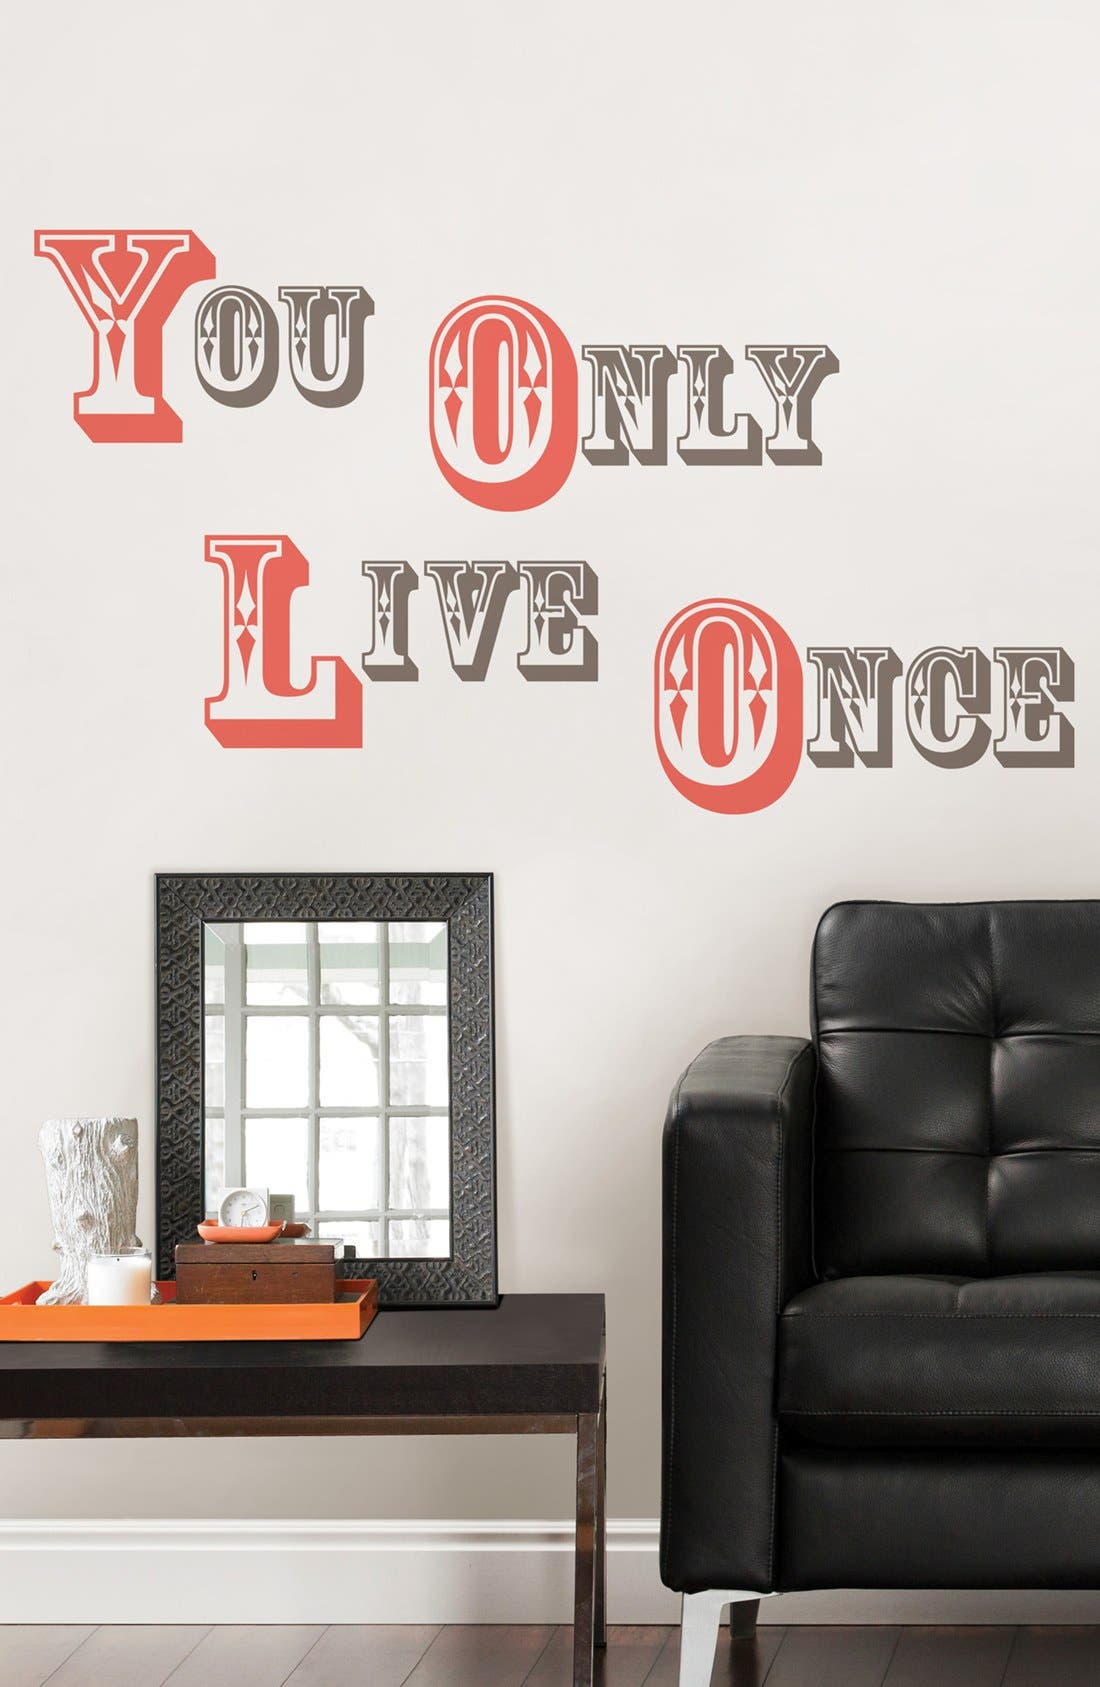 Main Image - Wallpops 'You Only Live Once' Wall Art